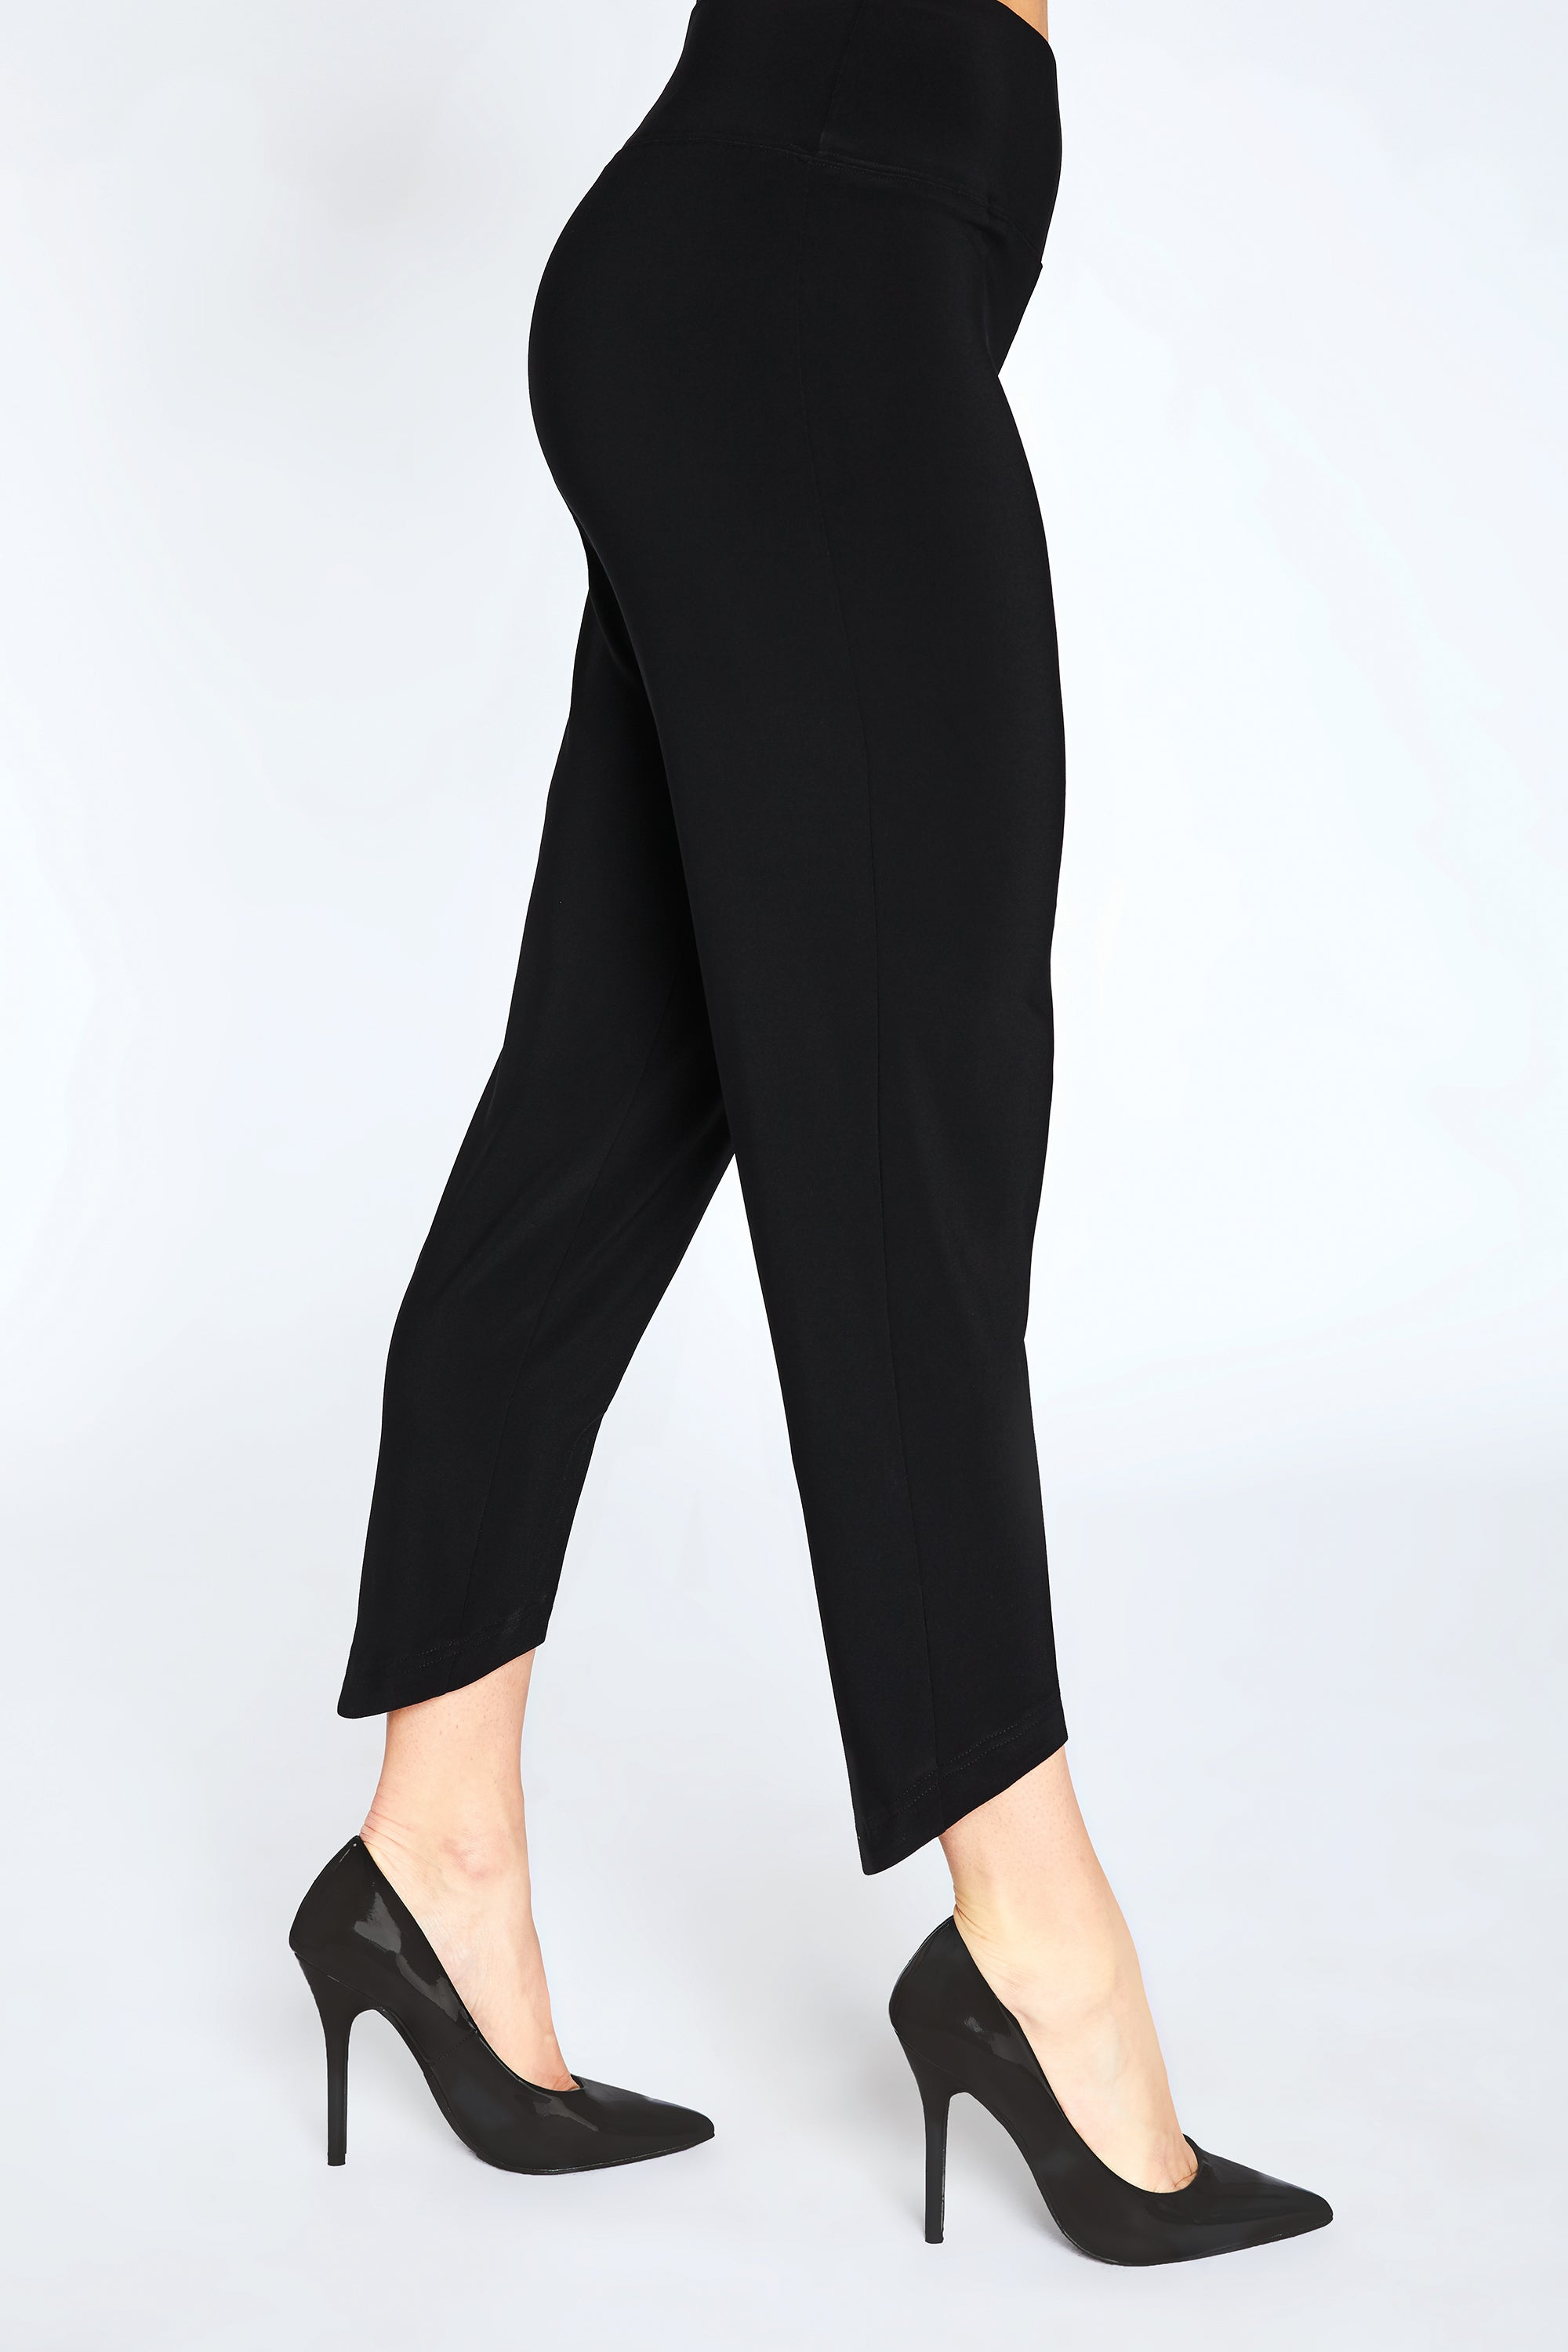 Sympli Drop Ankle Pant